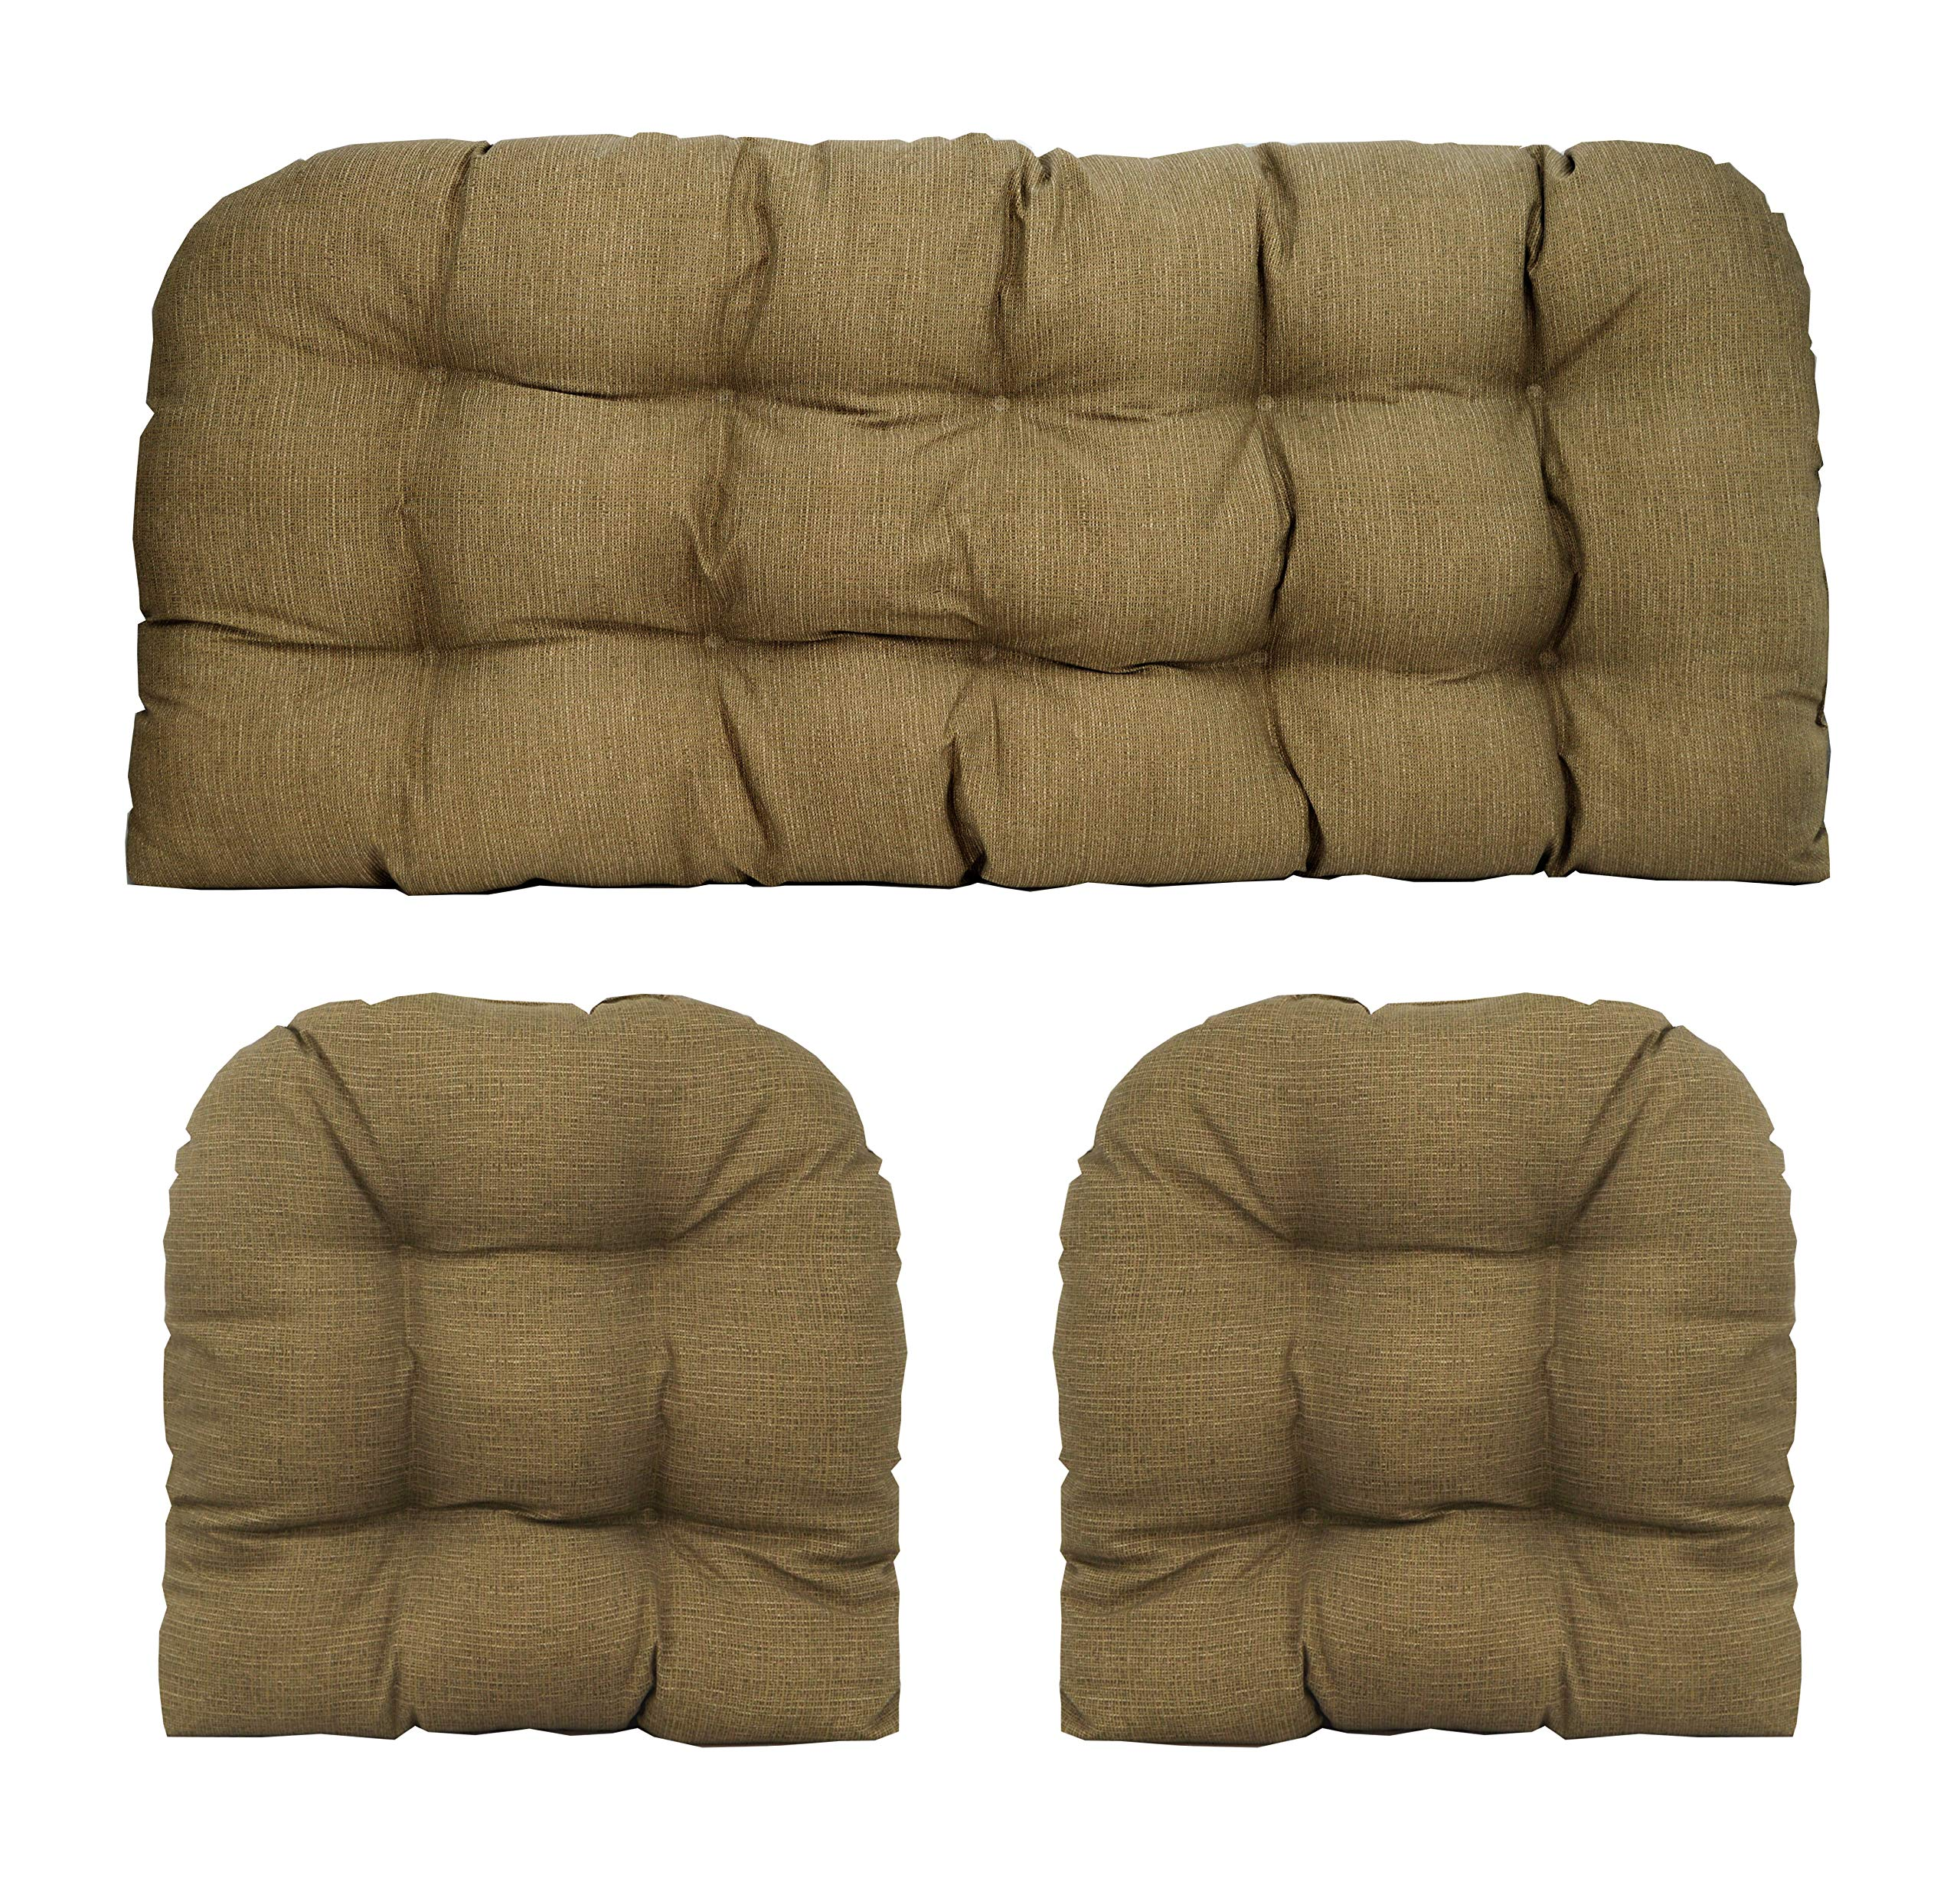 RSH Décor Indoor/Outdoor Wicker Cushions Two U-Shape and Loveseat 3 Piece Set (Faux Burlap)